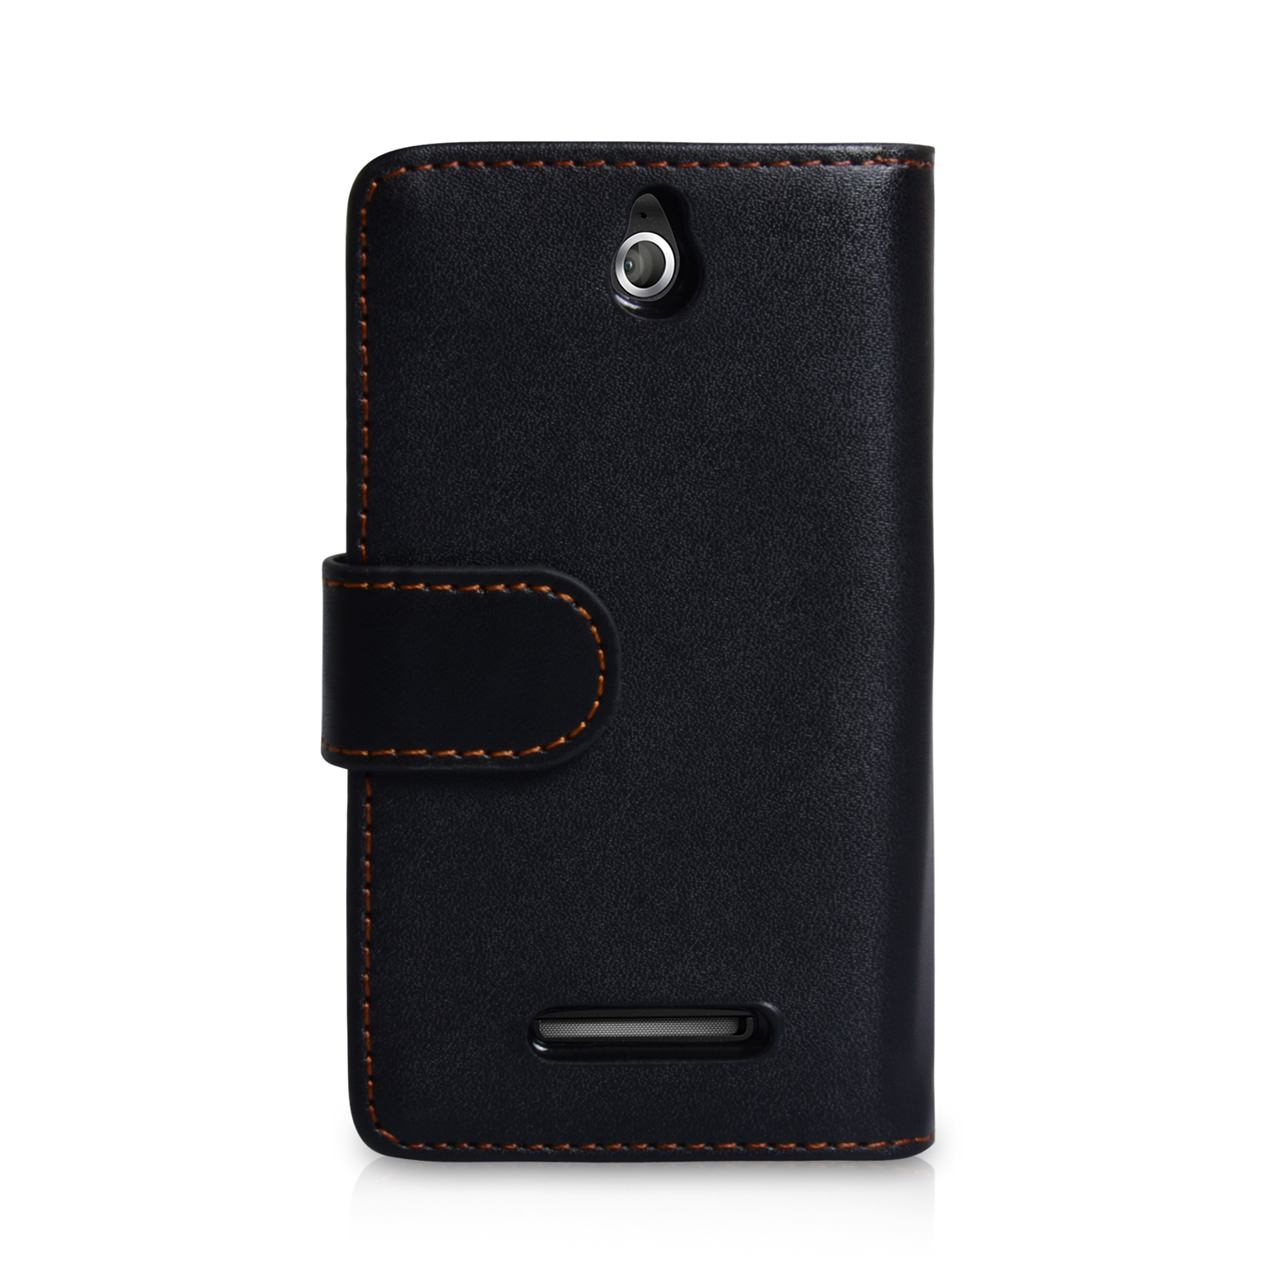 YouSave Accessories Sony Xperia E Leather Effect Wallet Case - Black